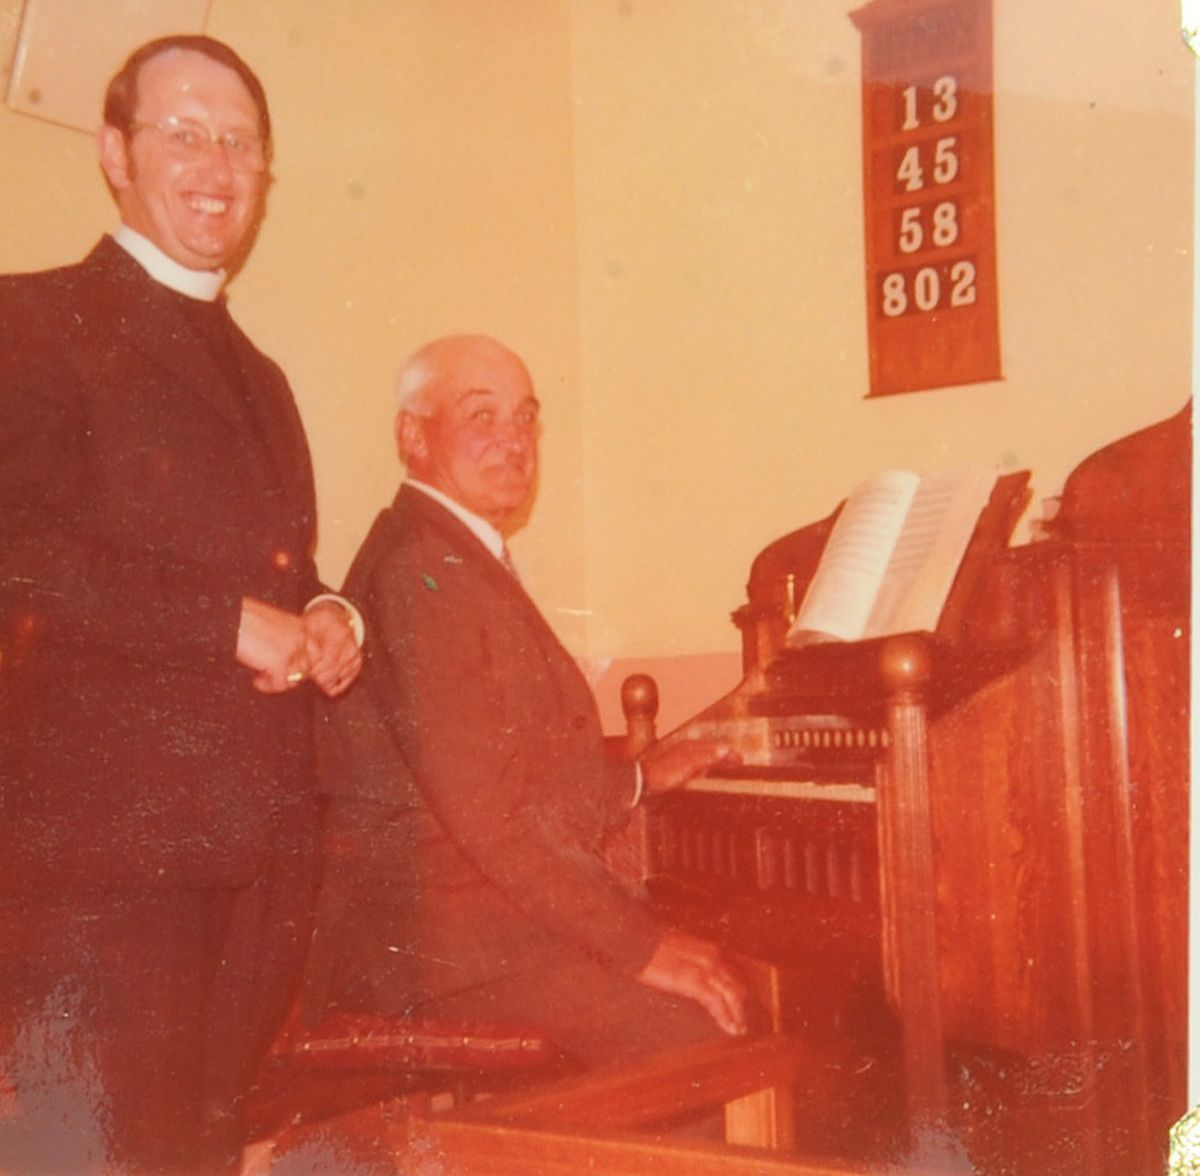 Organist Jim Powell served for more than 50 years service